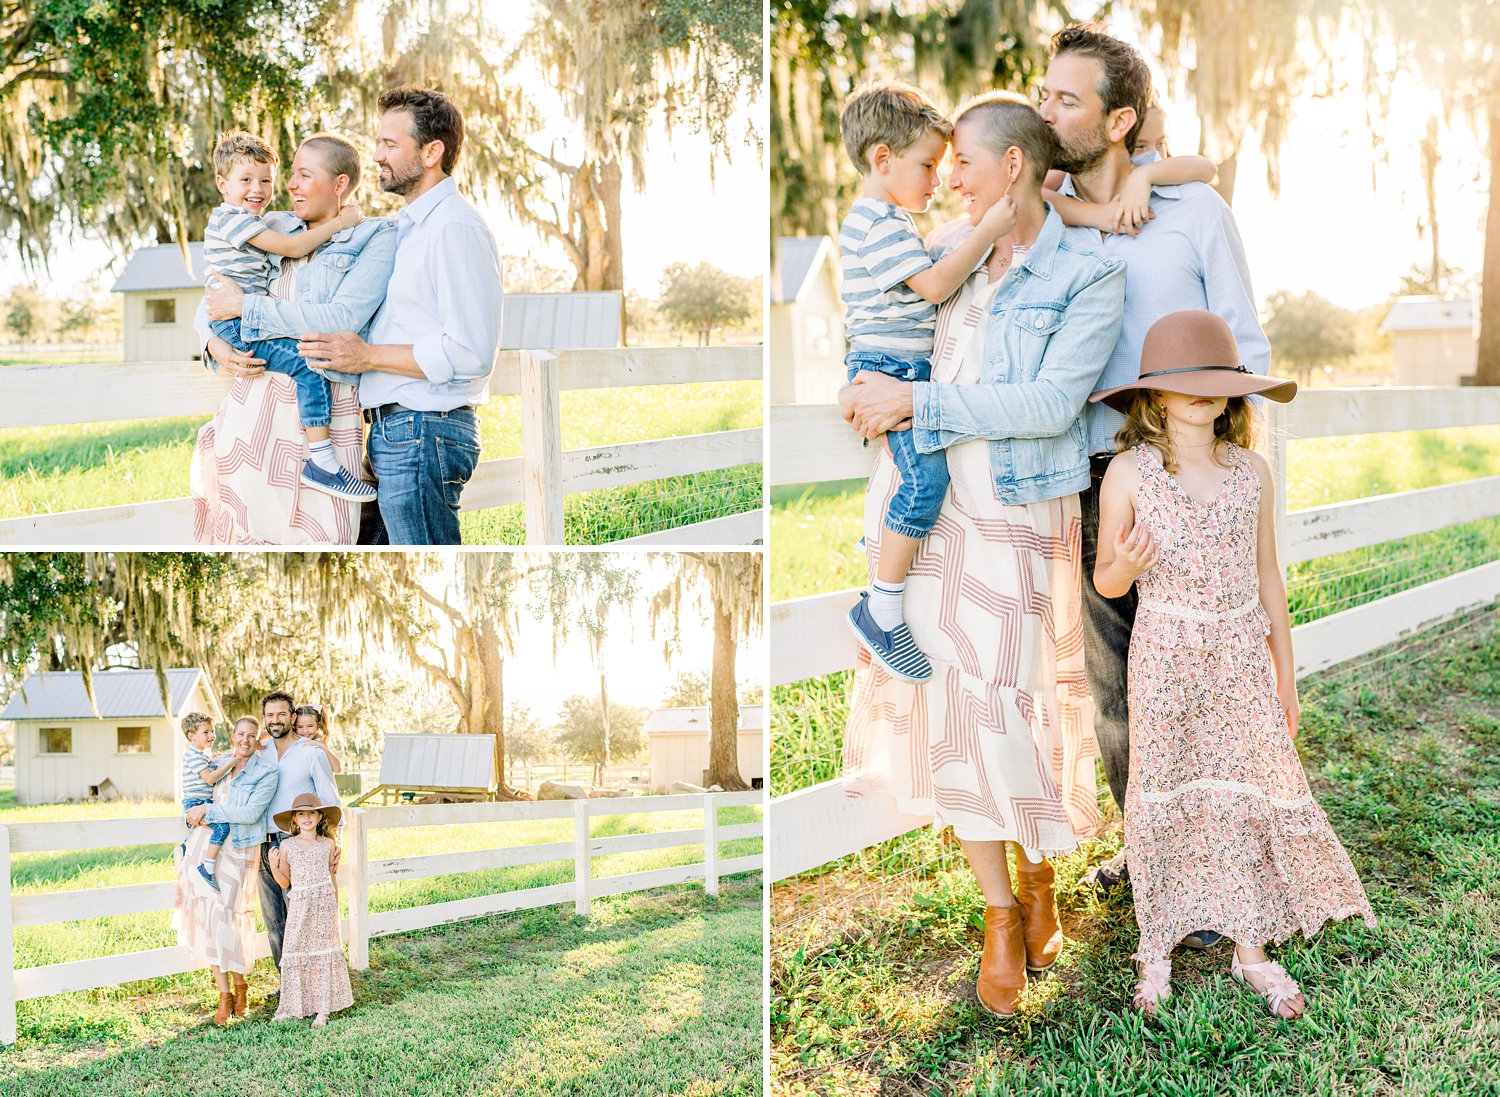 spring family photo session, photo collage, Congaree and Penn, Florida